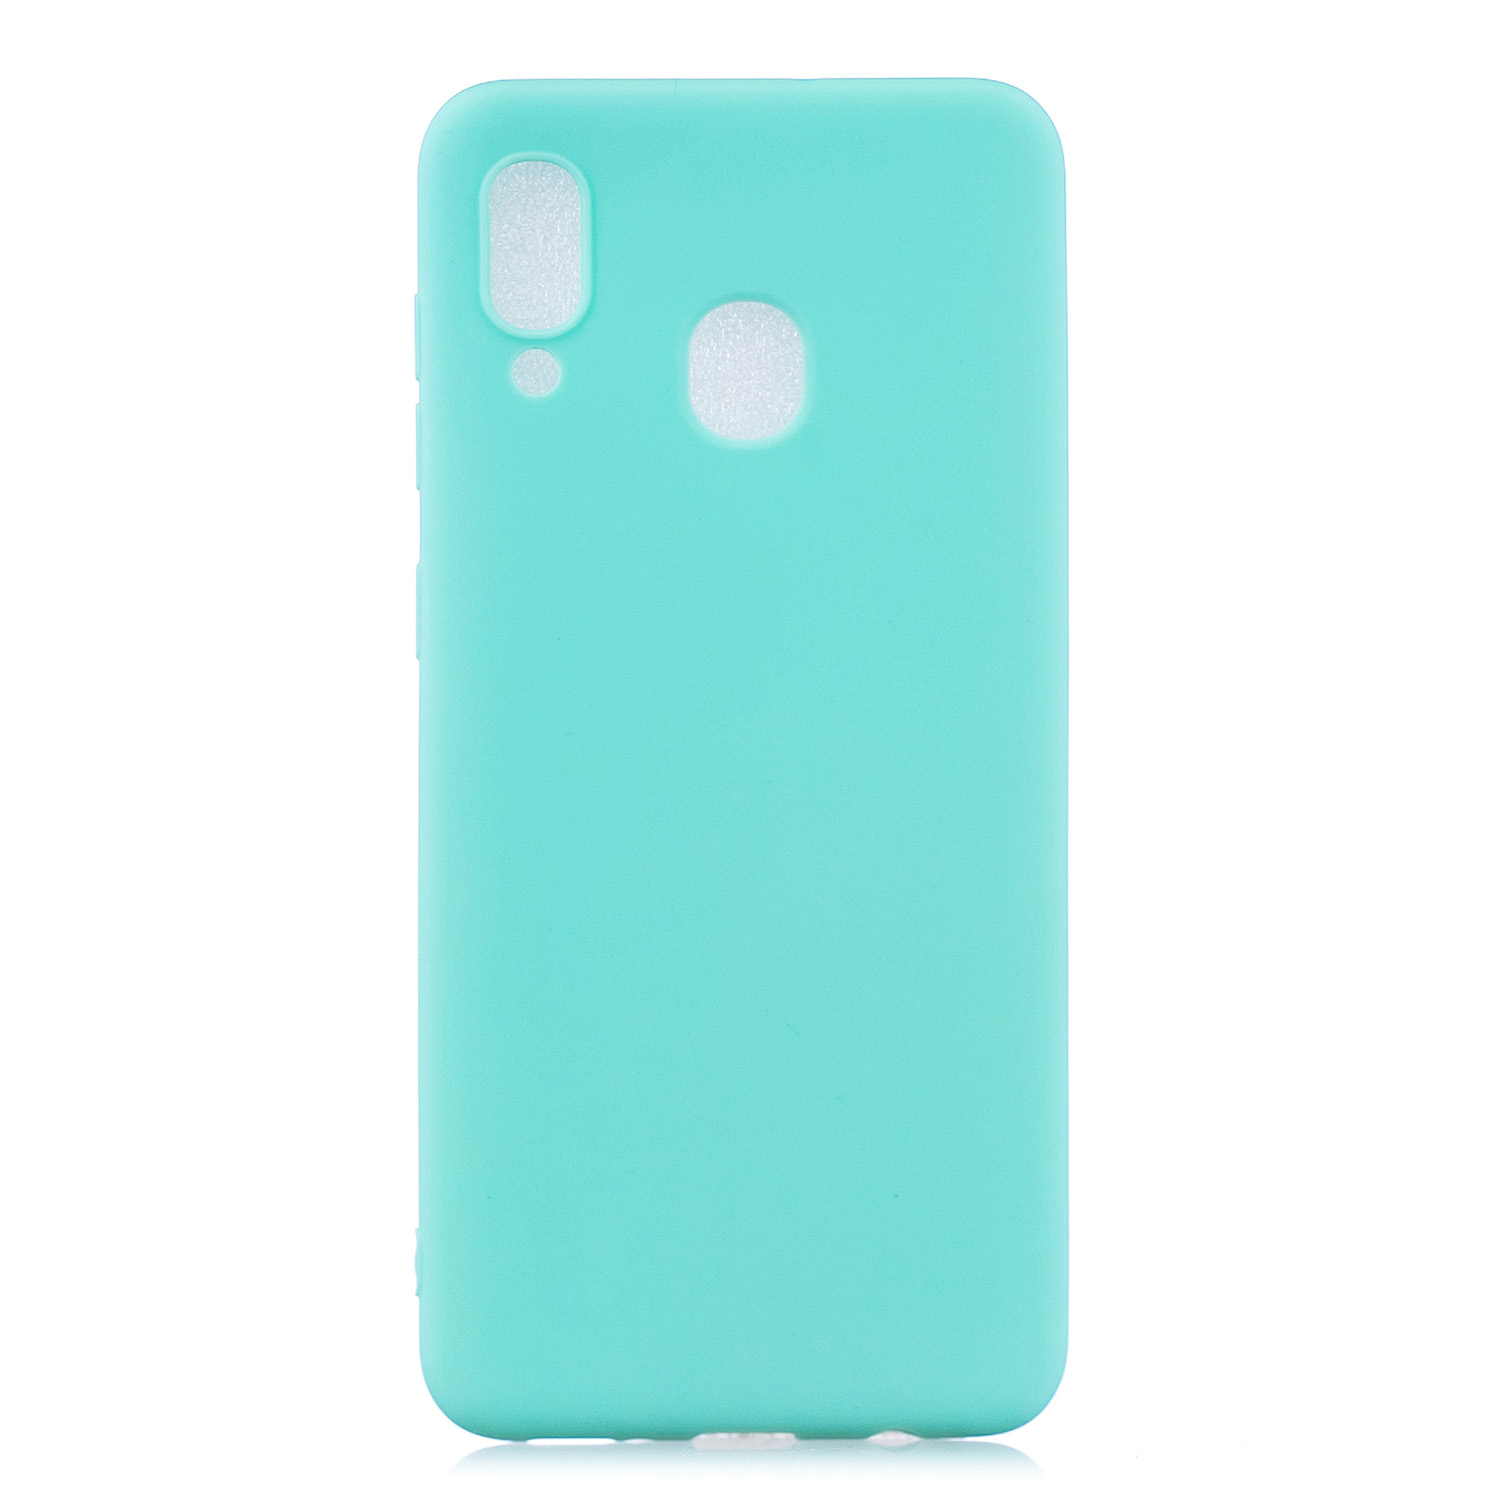 For HUAWEI Y9 2019 Lovely Candy Color Matte TPU Anti-scratch Non-slip Protective Cover Back Case Light blue